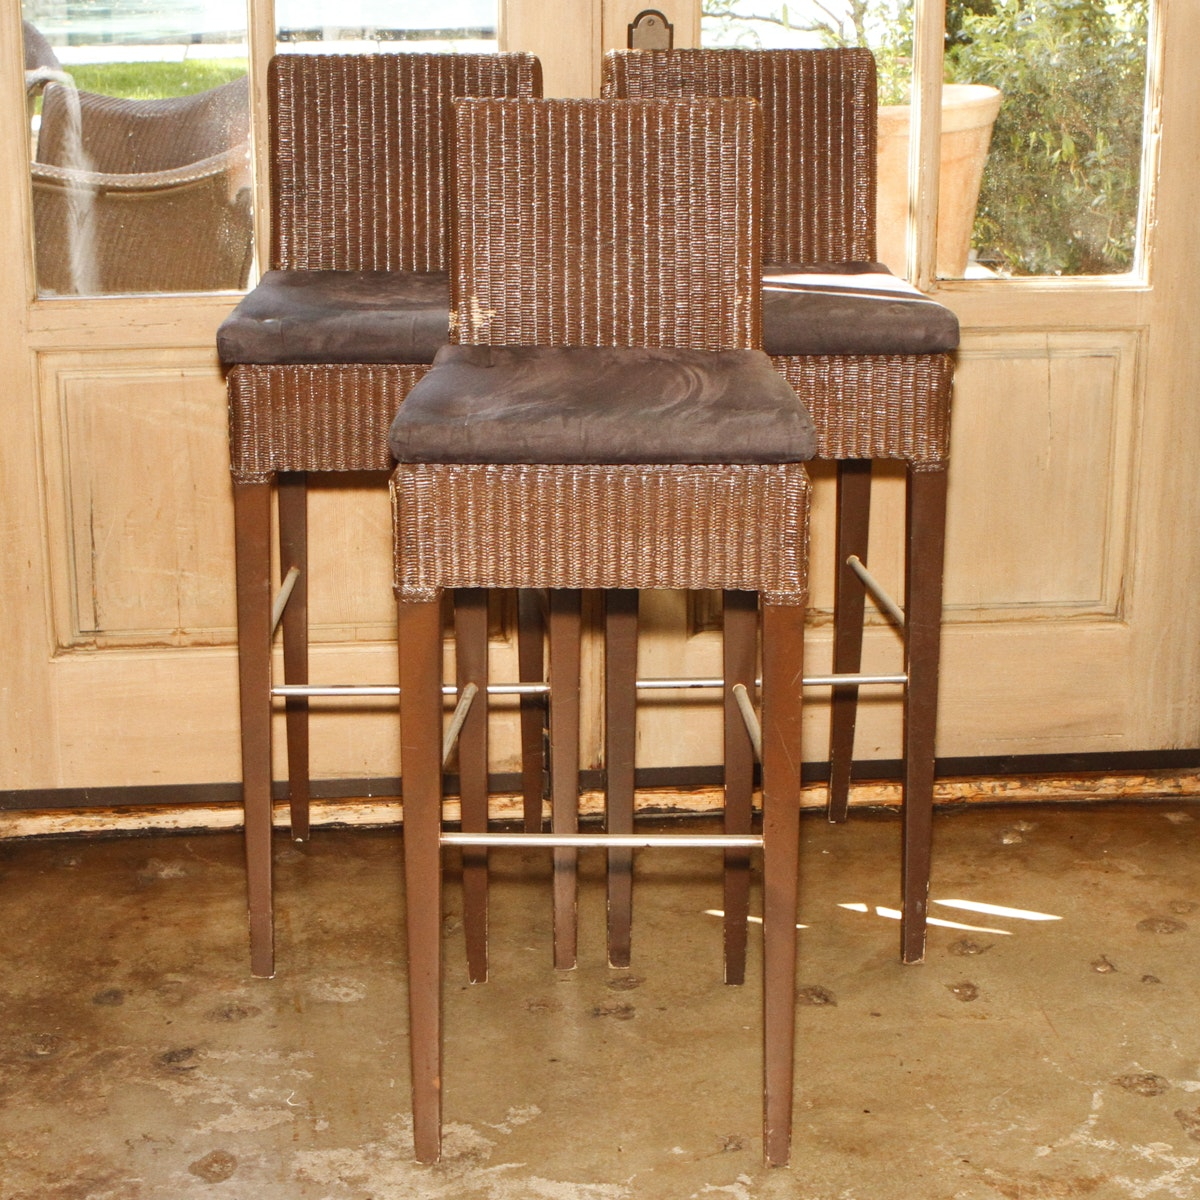 Collection of Wicker and Wood Bar Stools